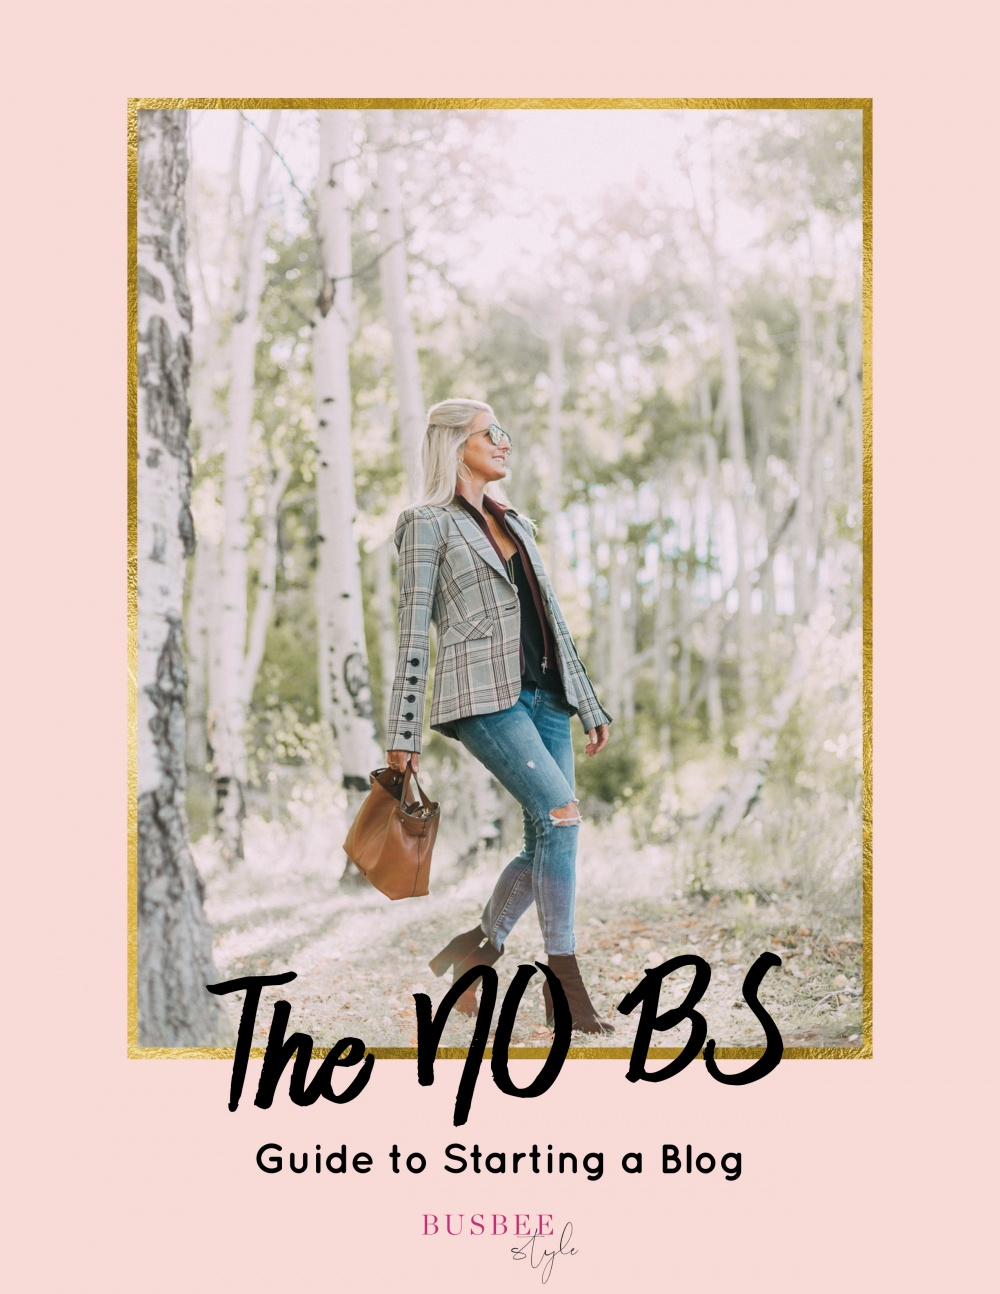 The NO BS Guide to Starting a Blog by Fashion Blogger Erin Busbee of Busbeestyle.com